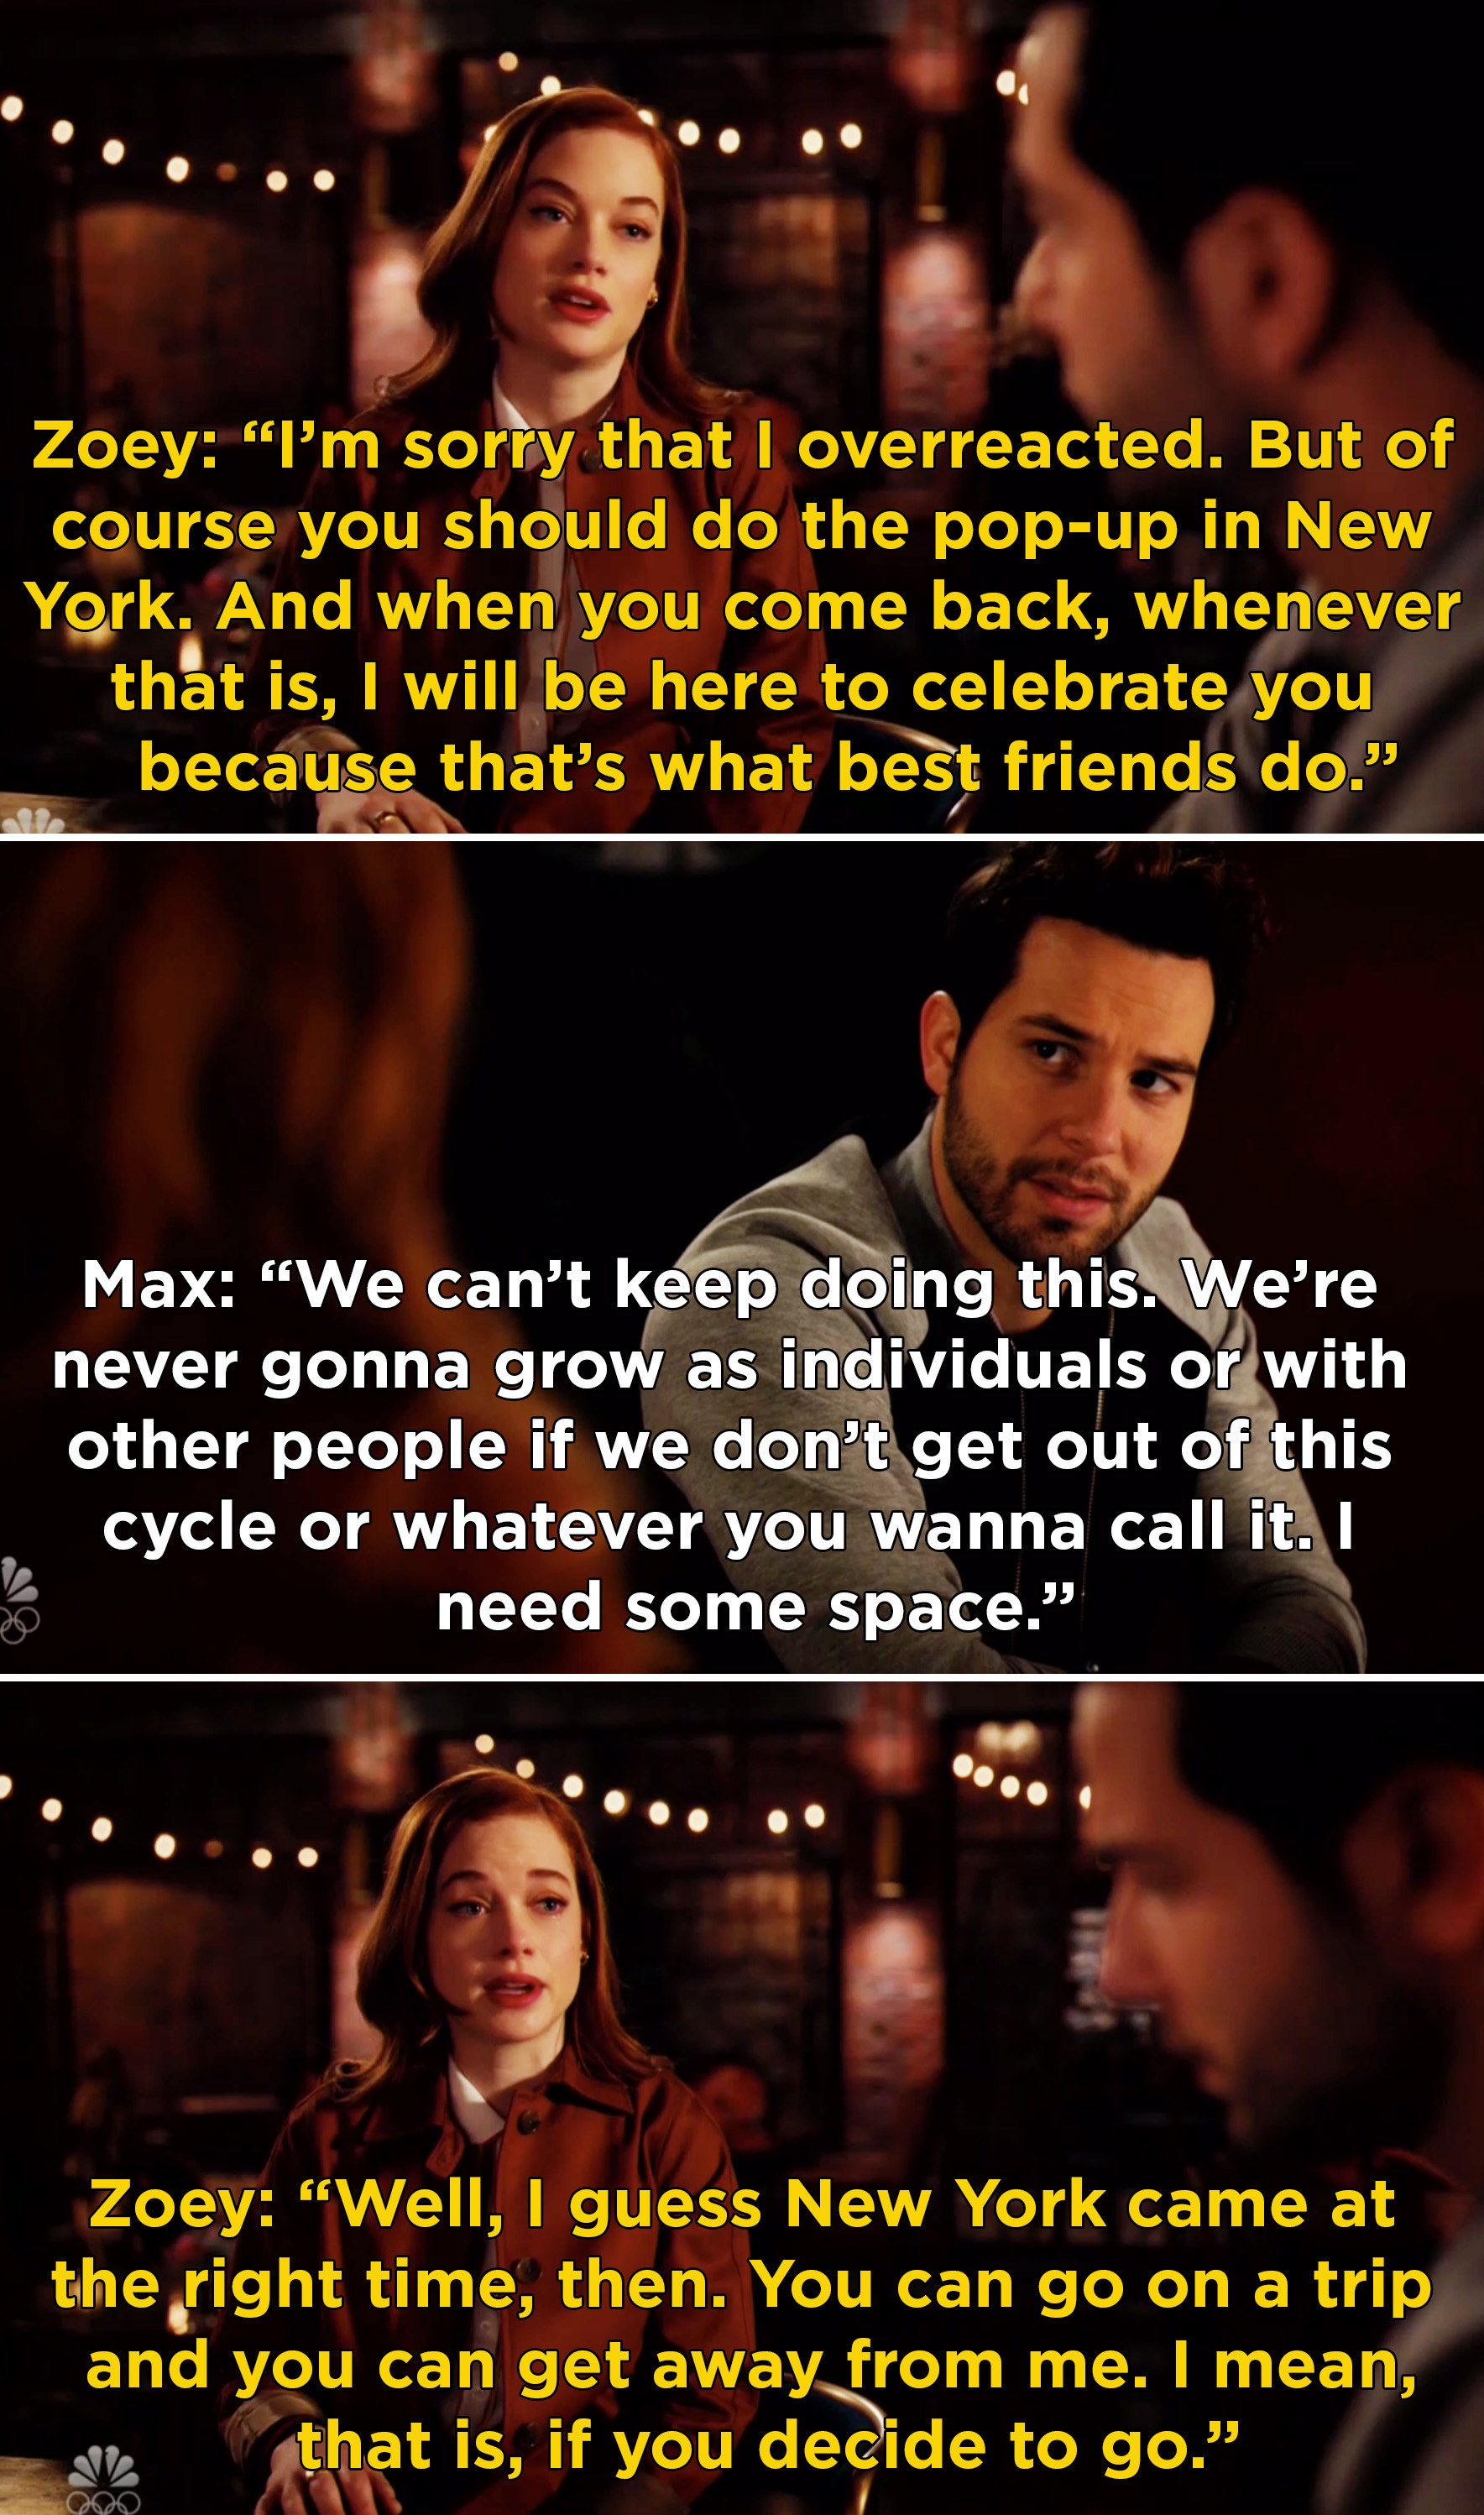 Max telling Zoey he needs some space, and Zoey saying that he should go to New York then